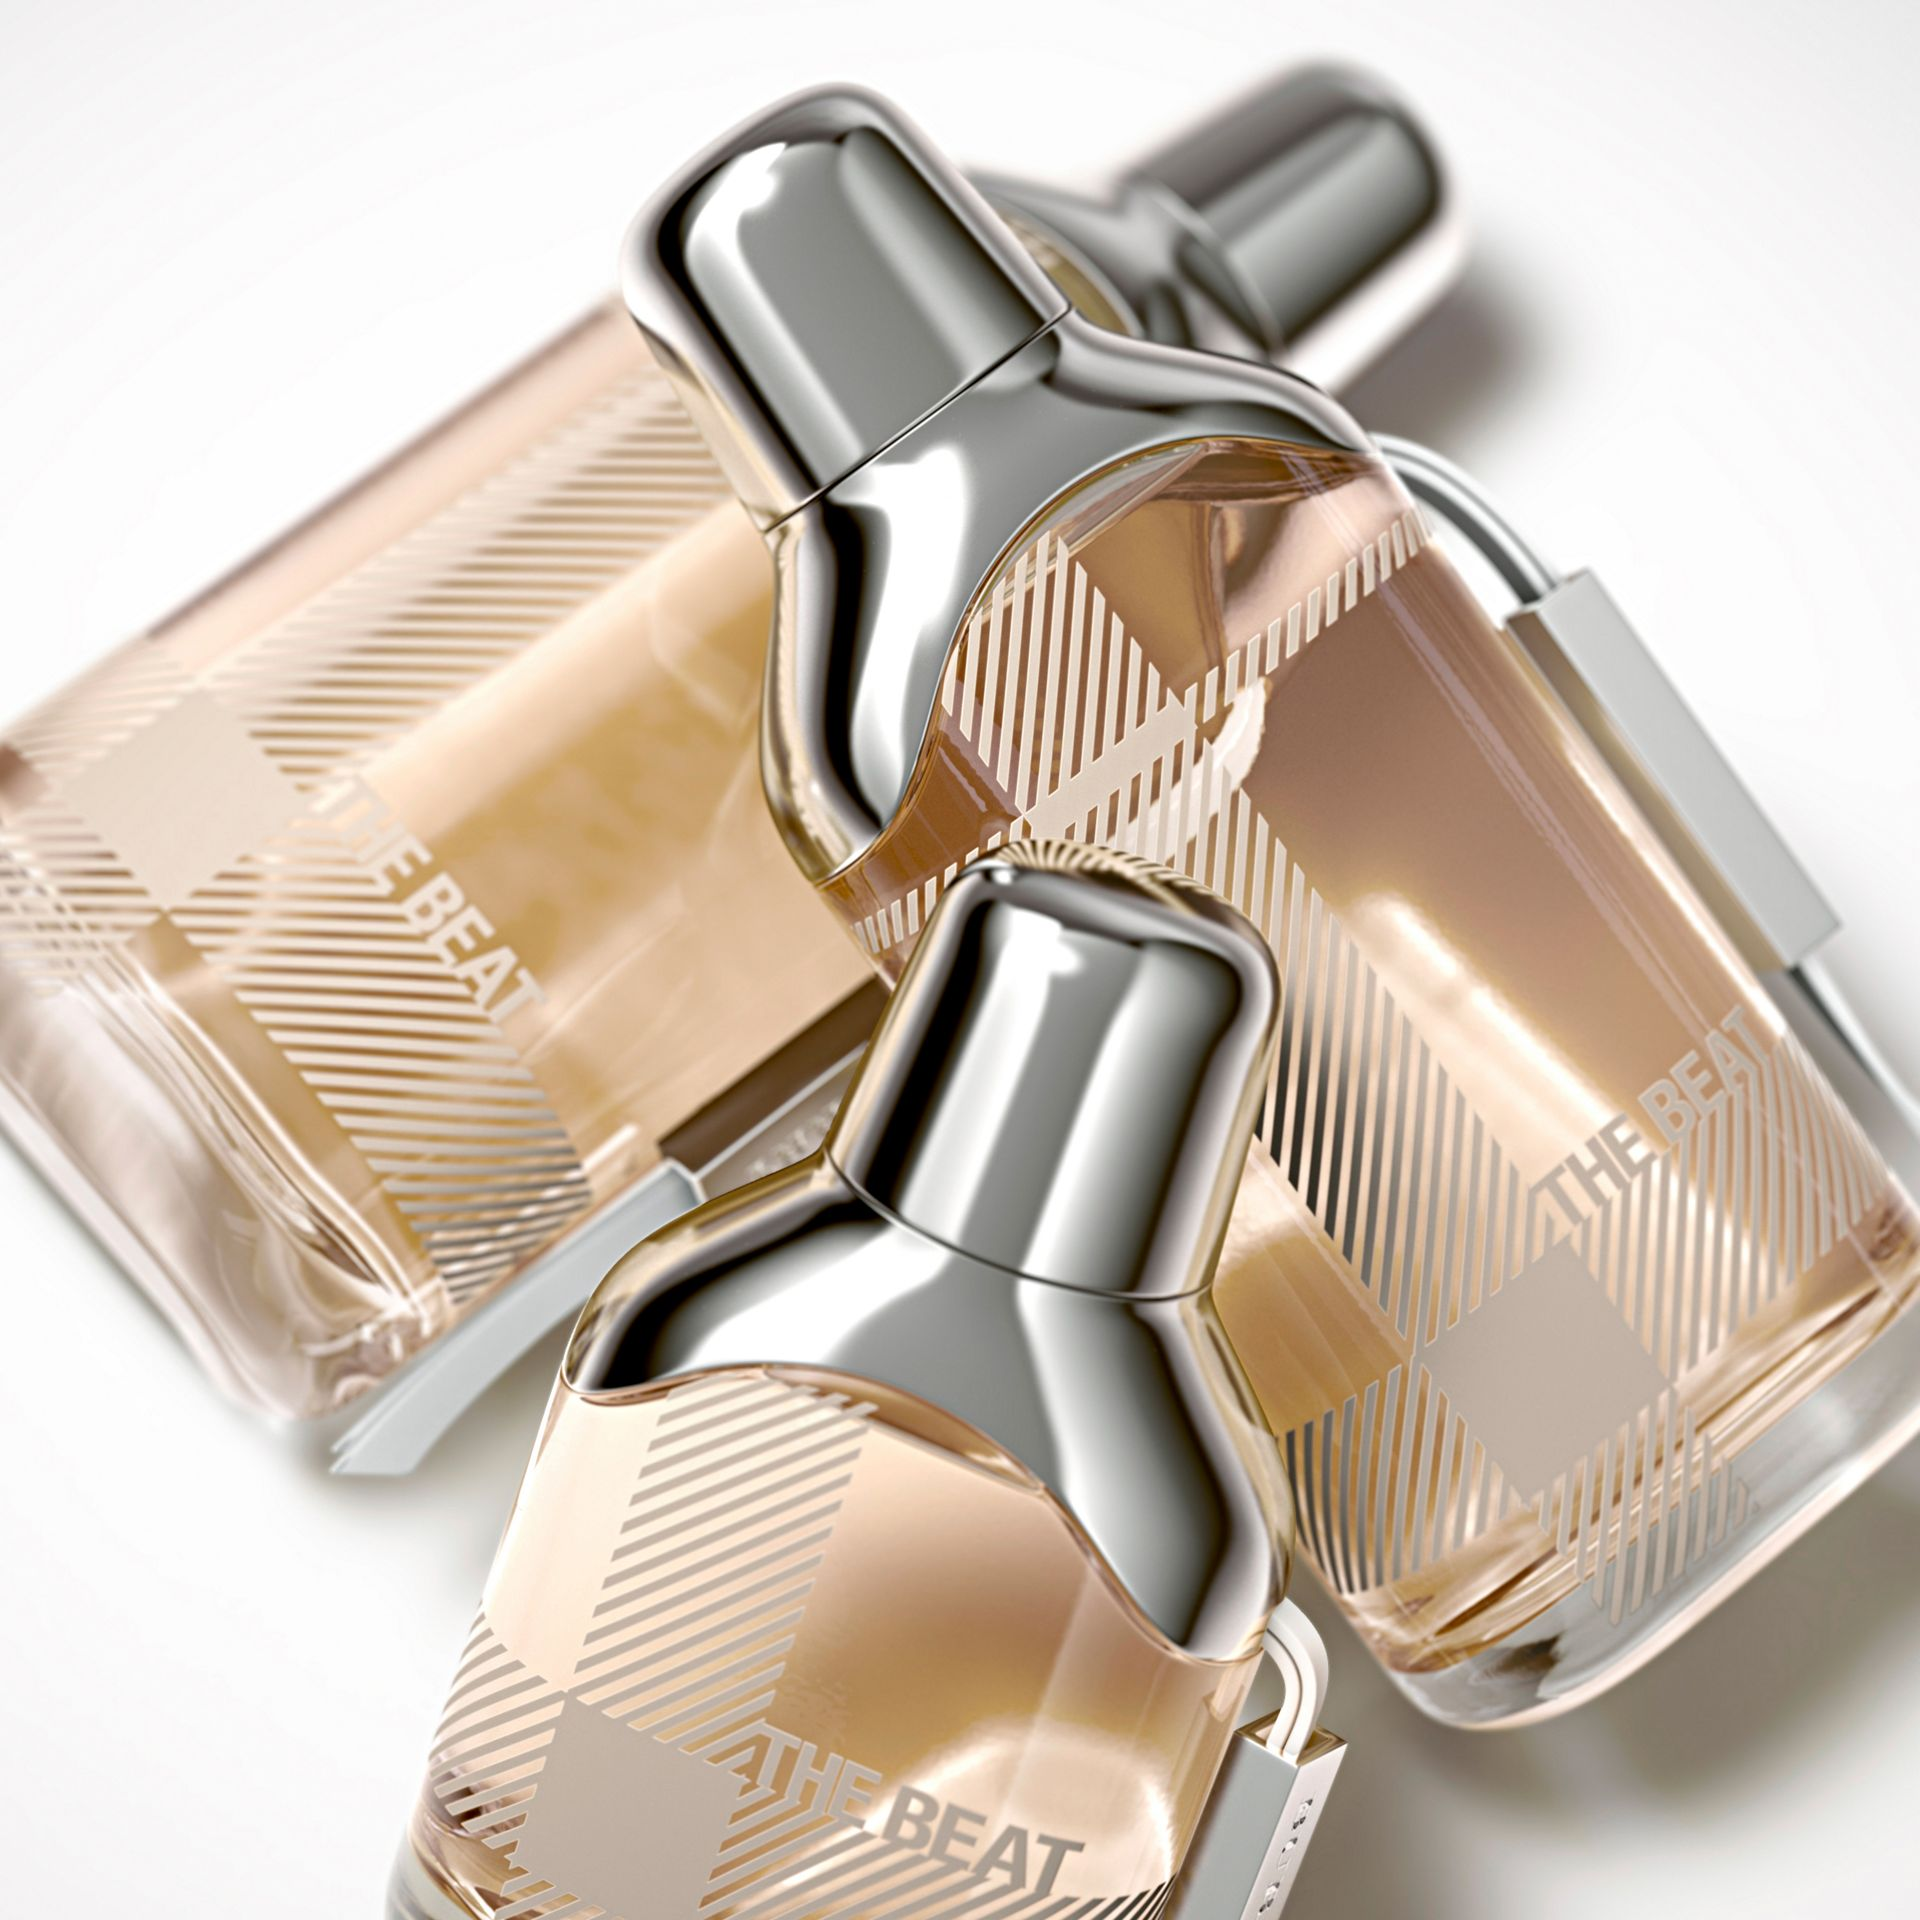 Burberry The Beat Eau de Parfum 75ml - Women | Burberry Australia - gallery image 1